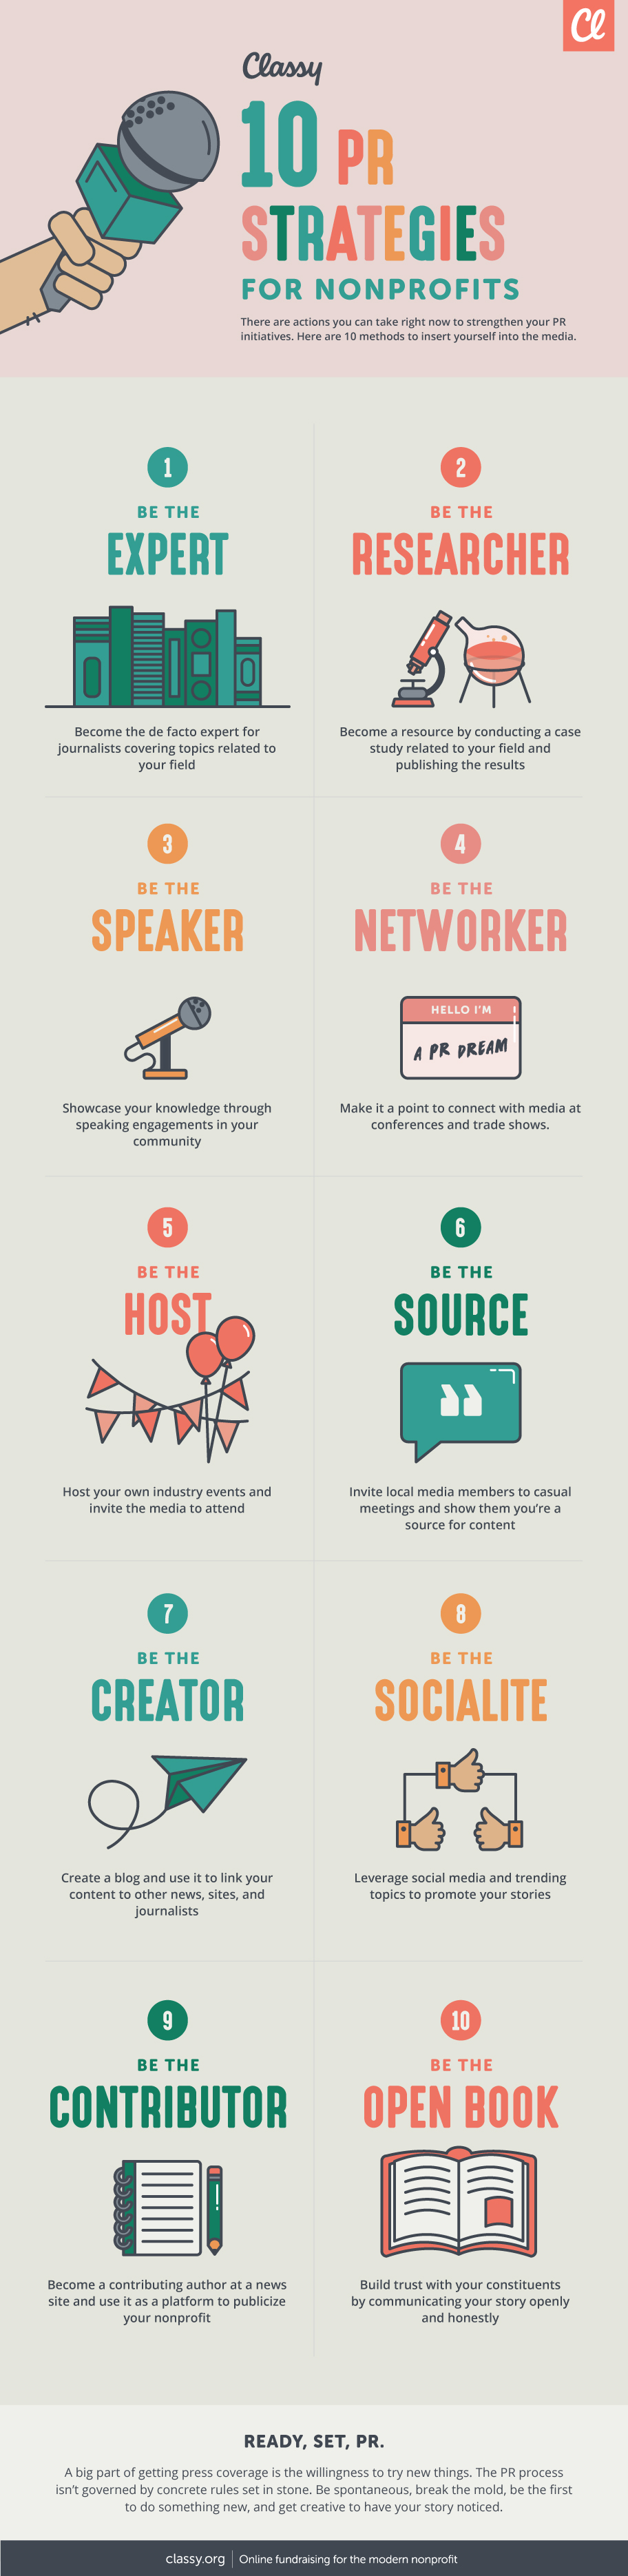 How to Use PR to Get Your Non-Profit Noticed - Infographic